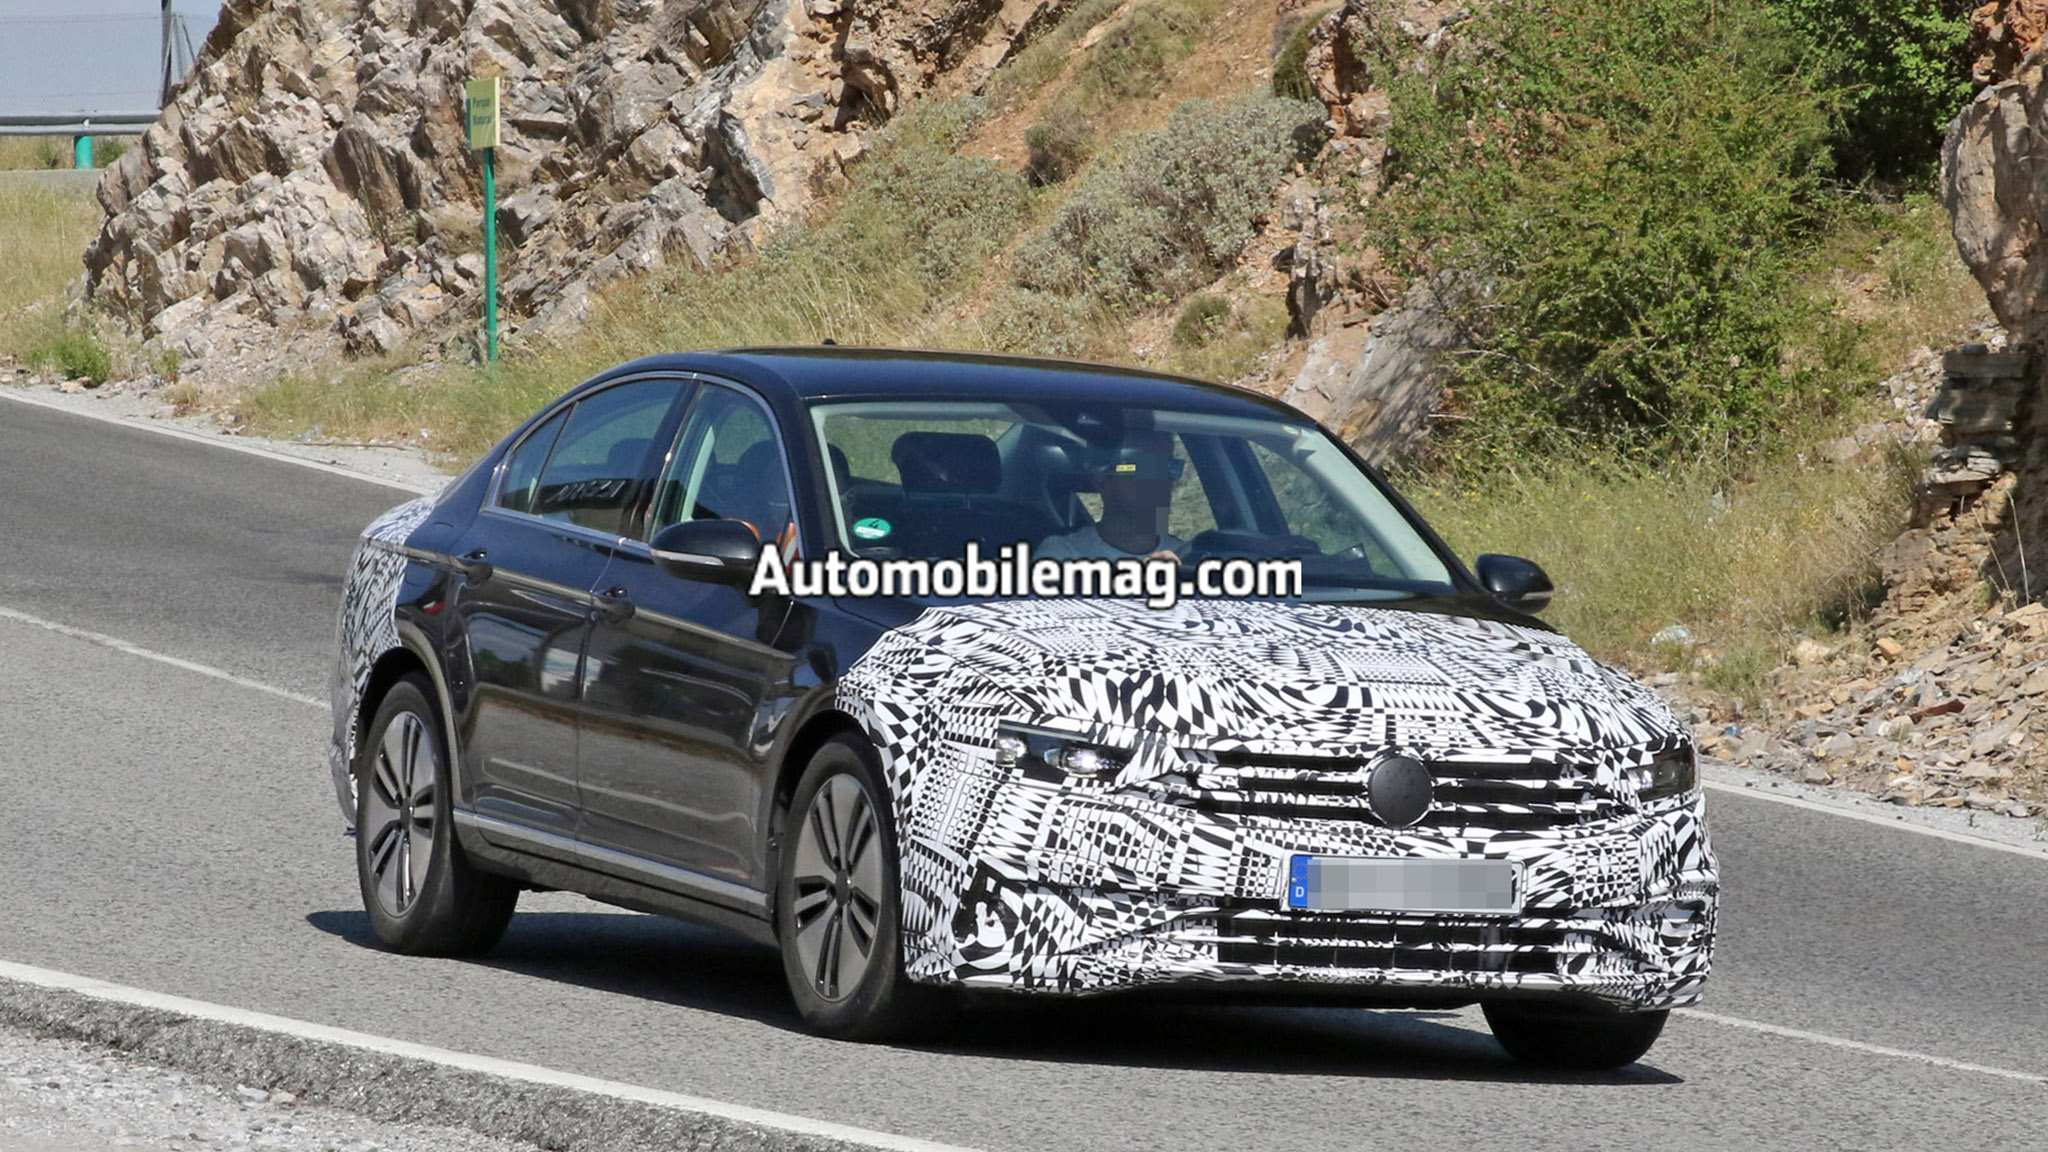 42 New The Volkswagen Passat 2019 Interior Spy Shoot Performance and New Engine by The Volkswagen Passat 2019 Interior Spy Shoot